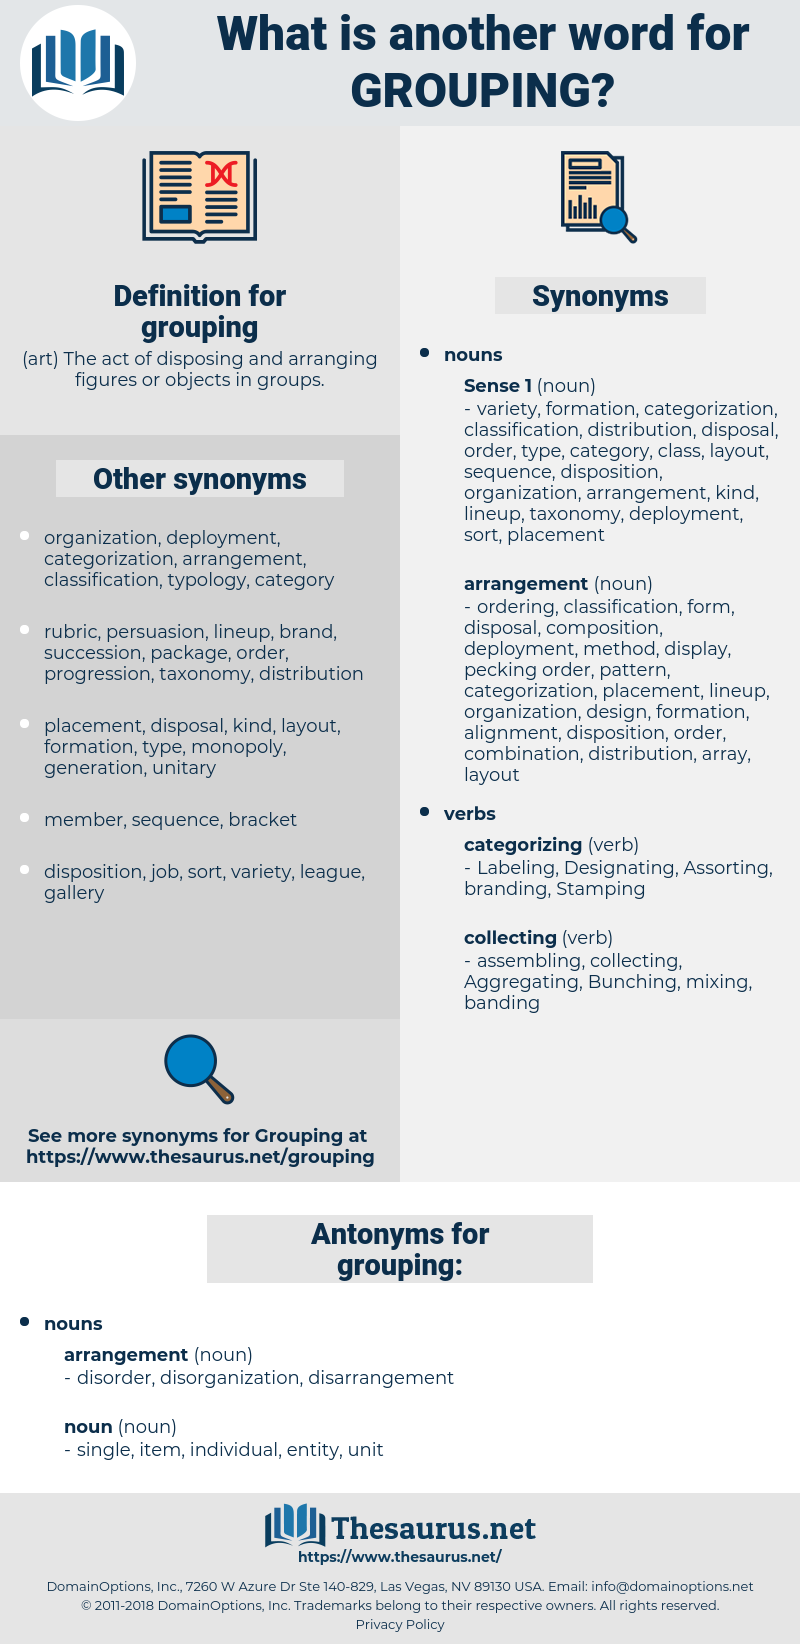 grouping, synonym grouping, another word for grouping, words like grouping, thesaurus grouping